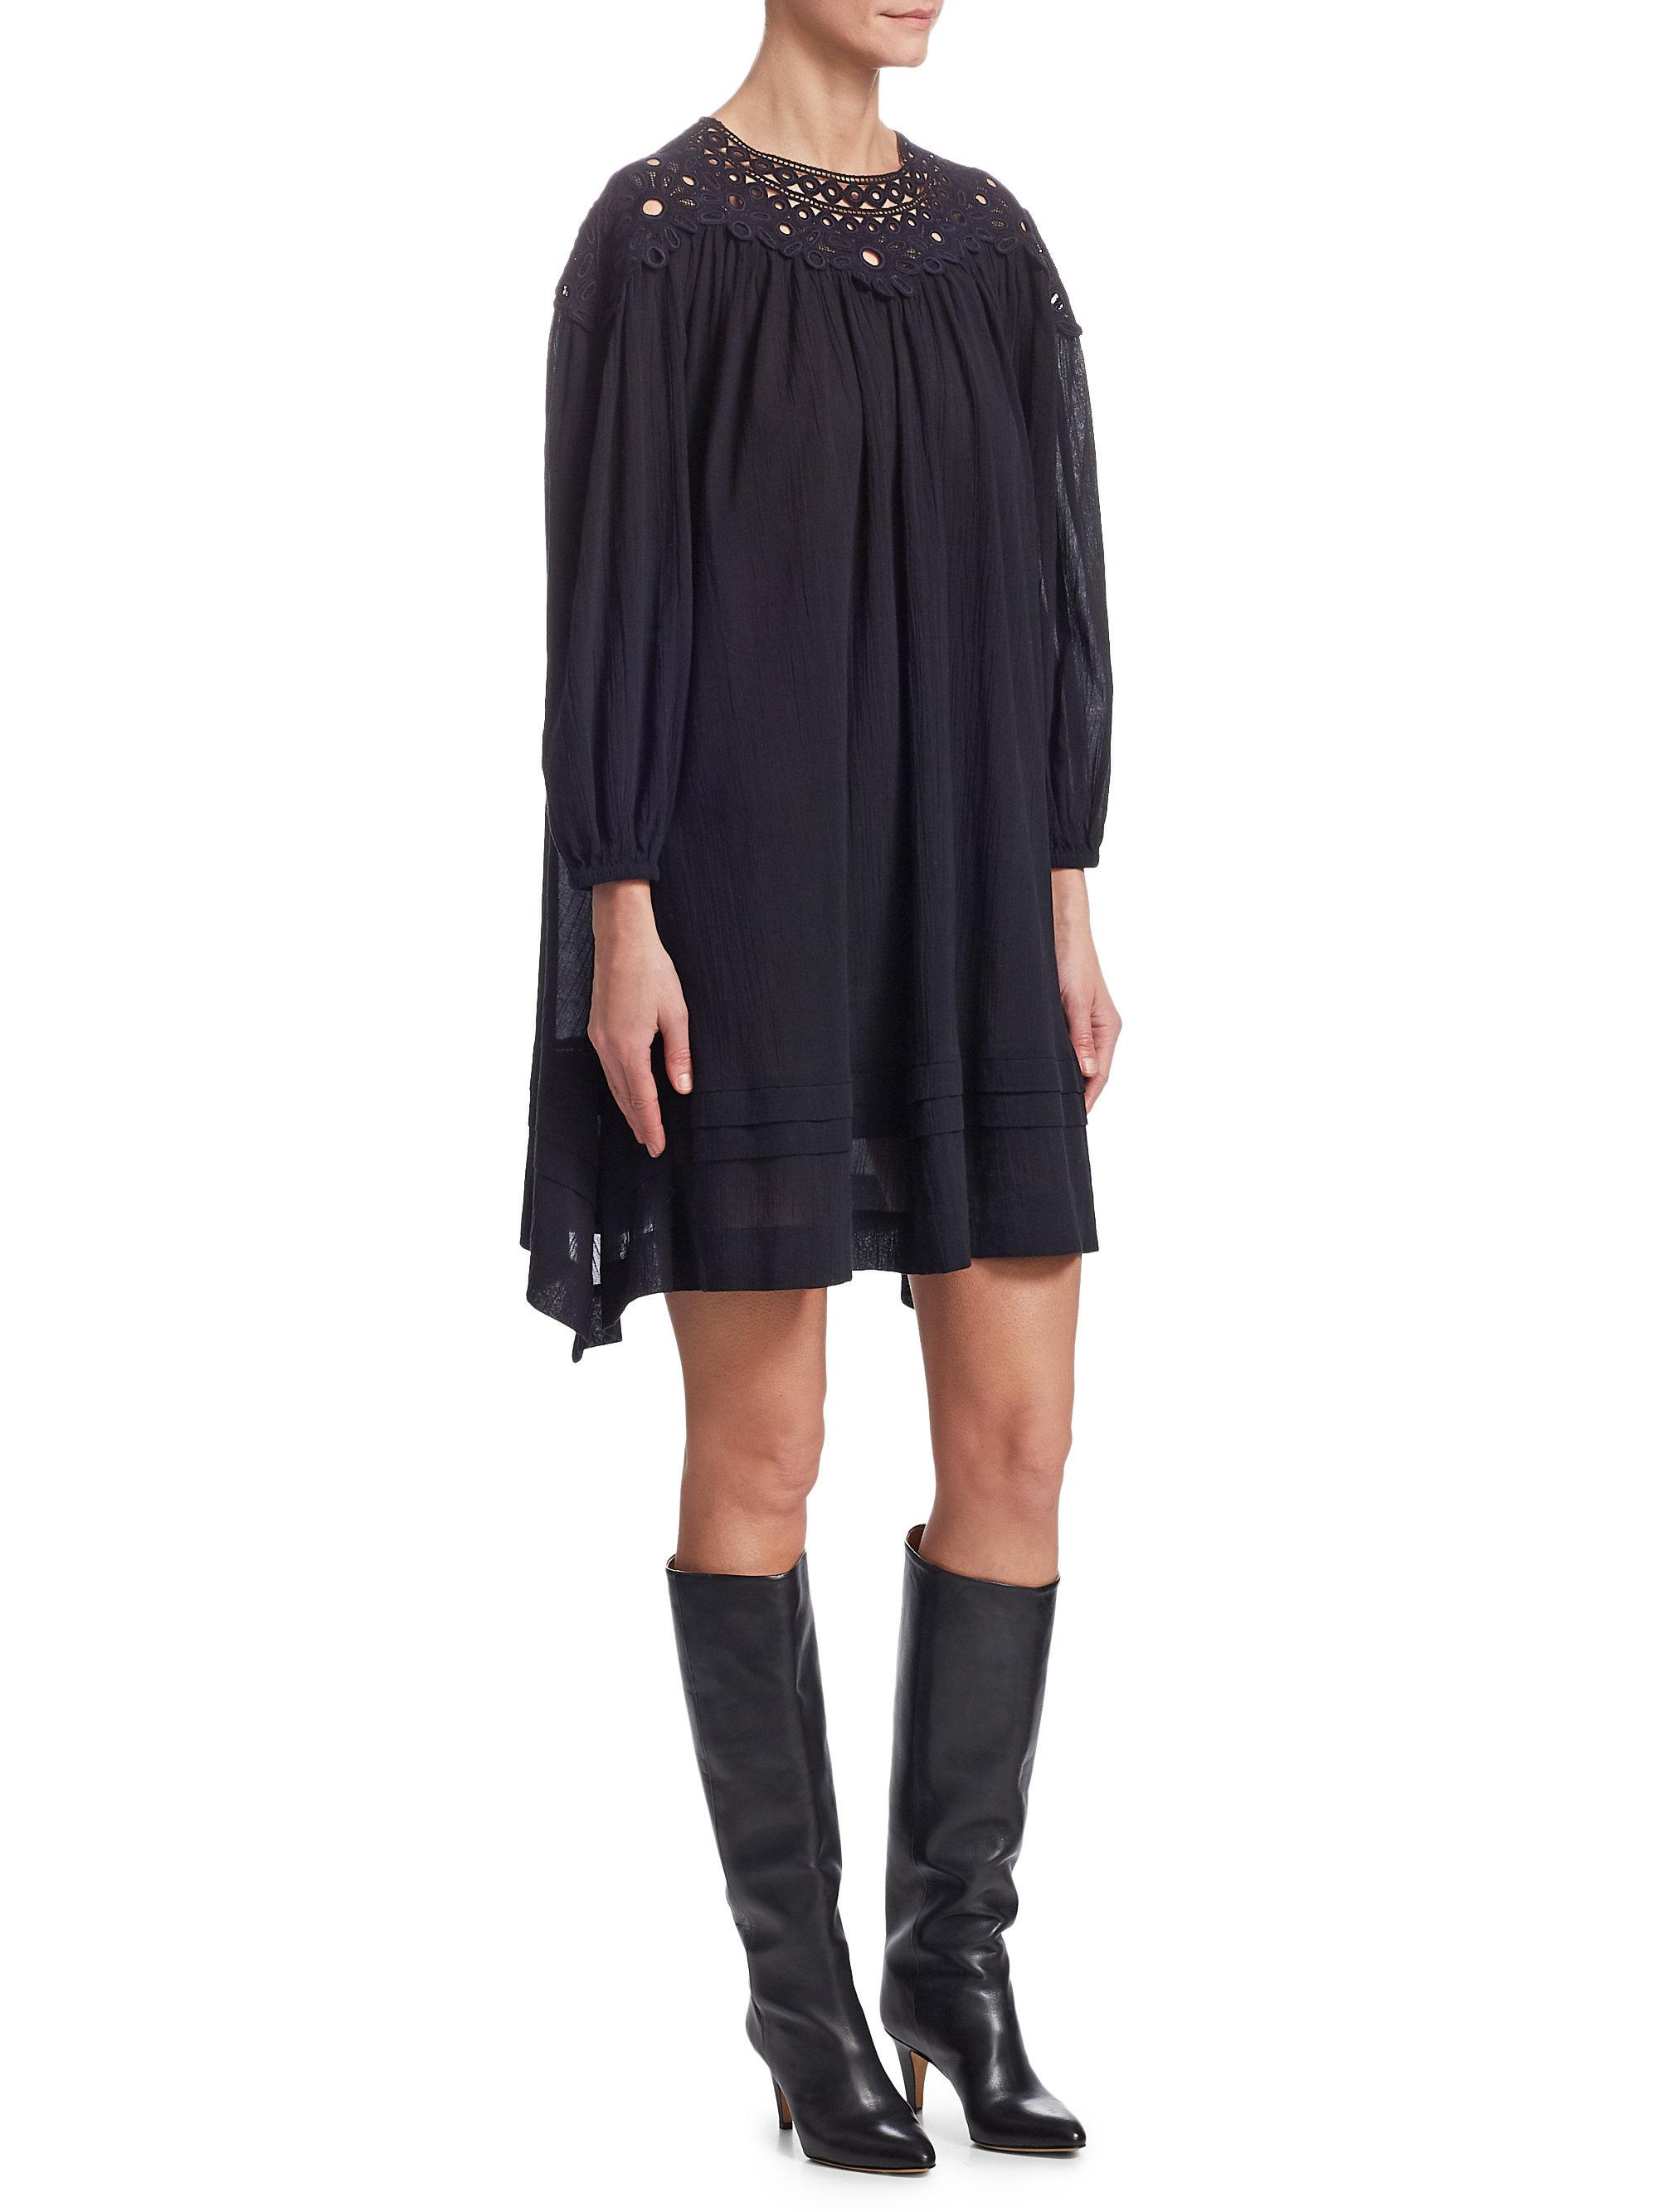 Cheapest Cheap Price Rita cut-out detail dress - Black Isabel Marant Best Place Outlet Low Price Fee Shipping Buy Cheap Good Selling y2HVf11y